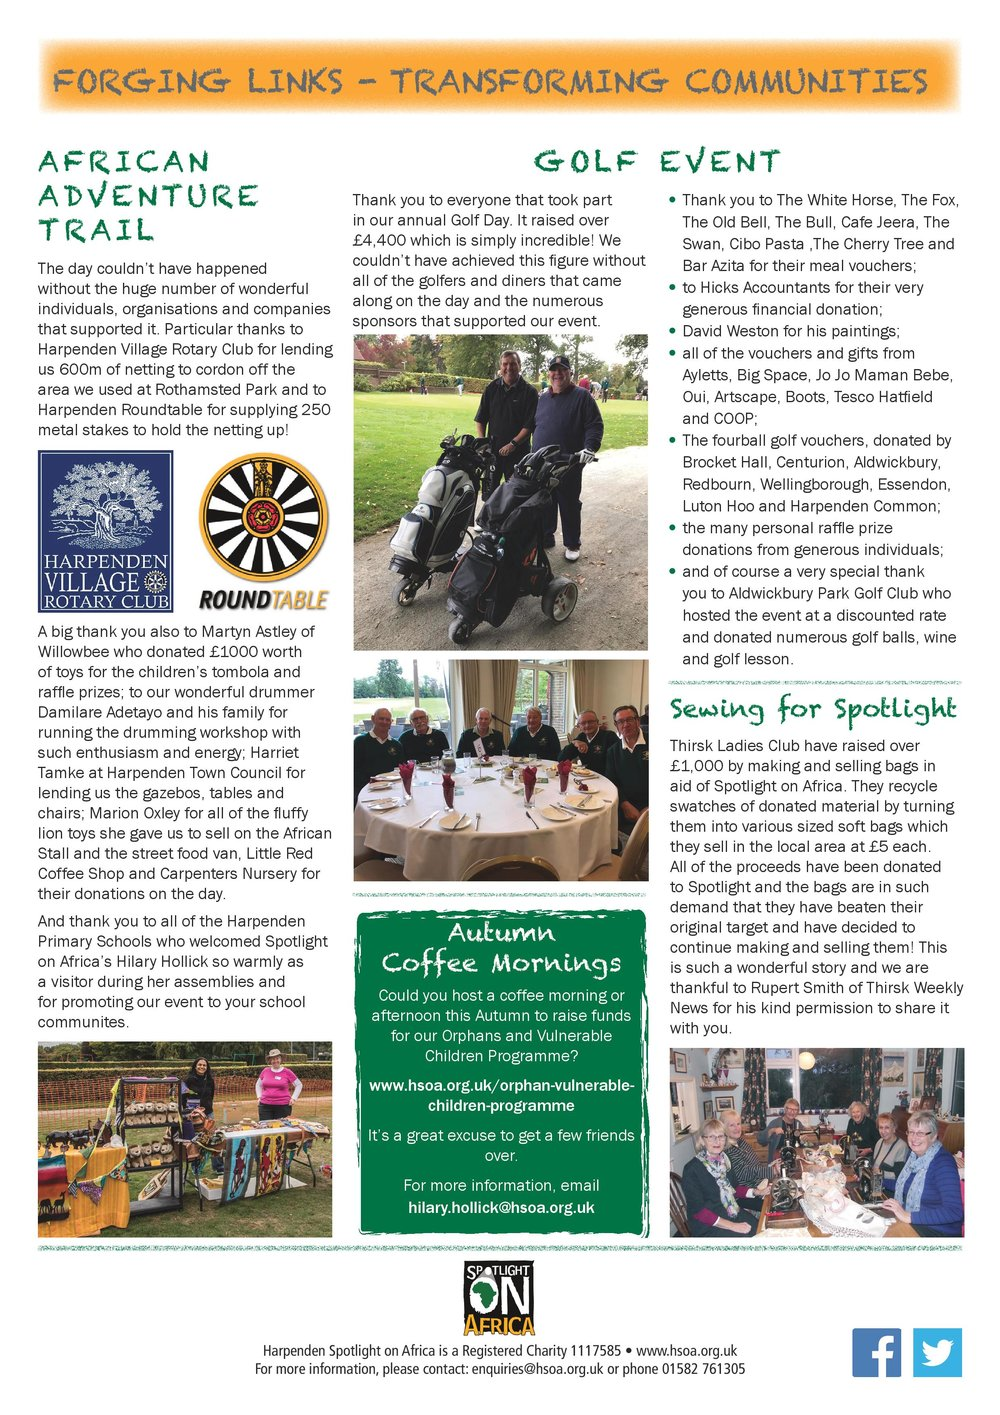 SoA_Newsletter_October2018-page-002.jpg